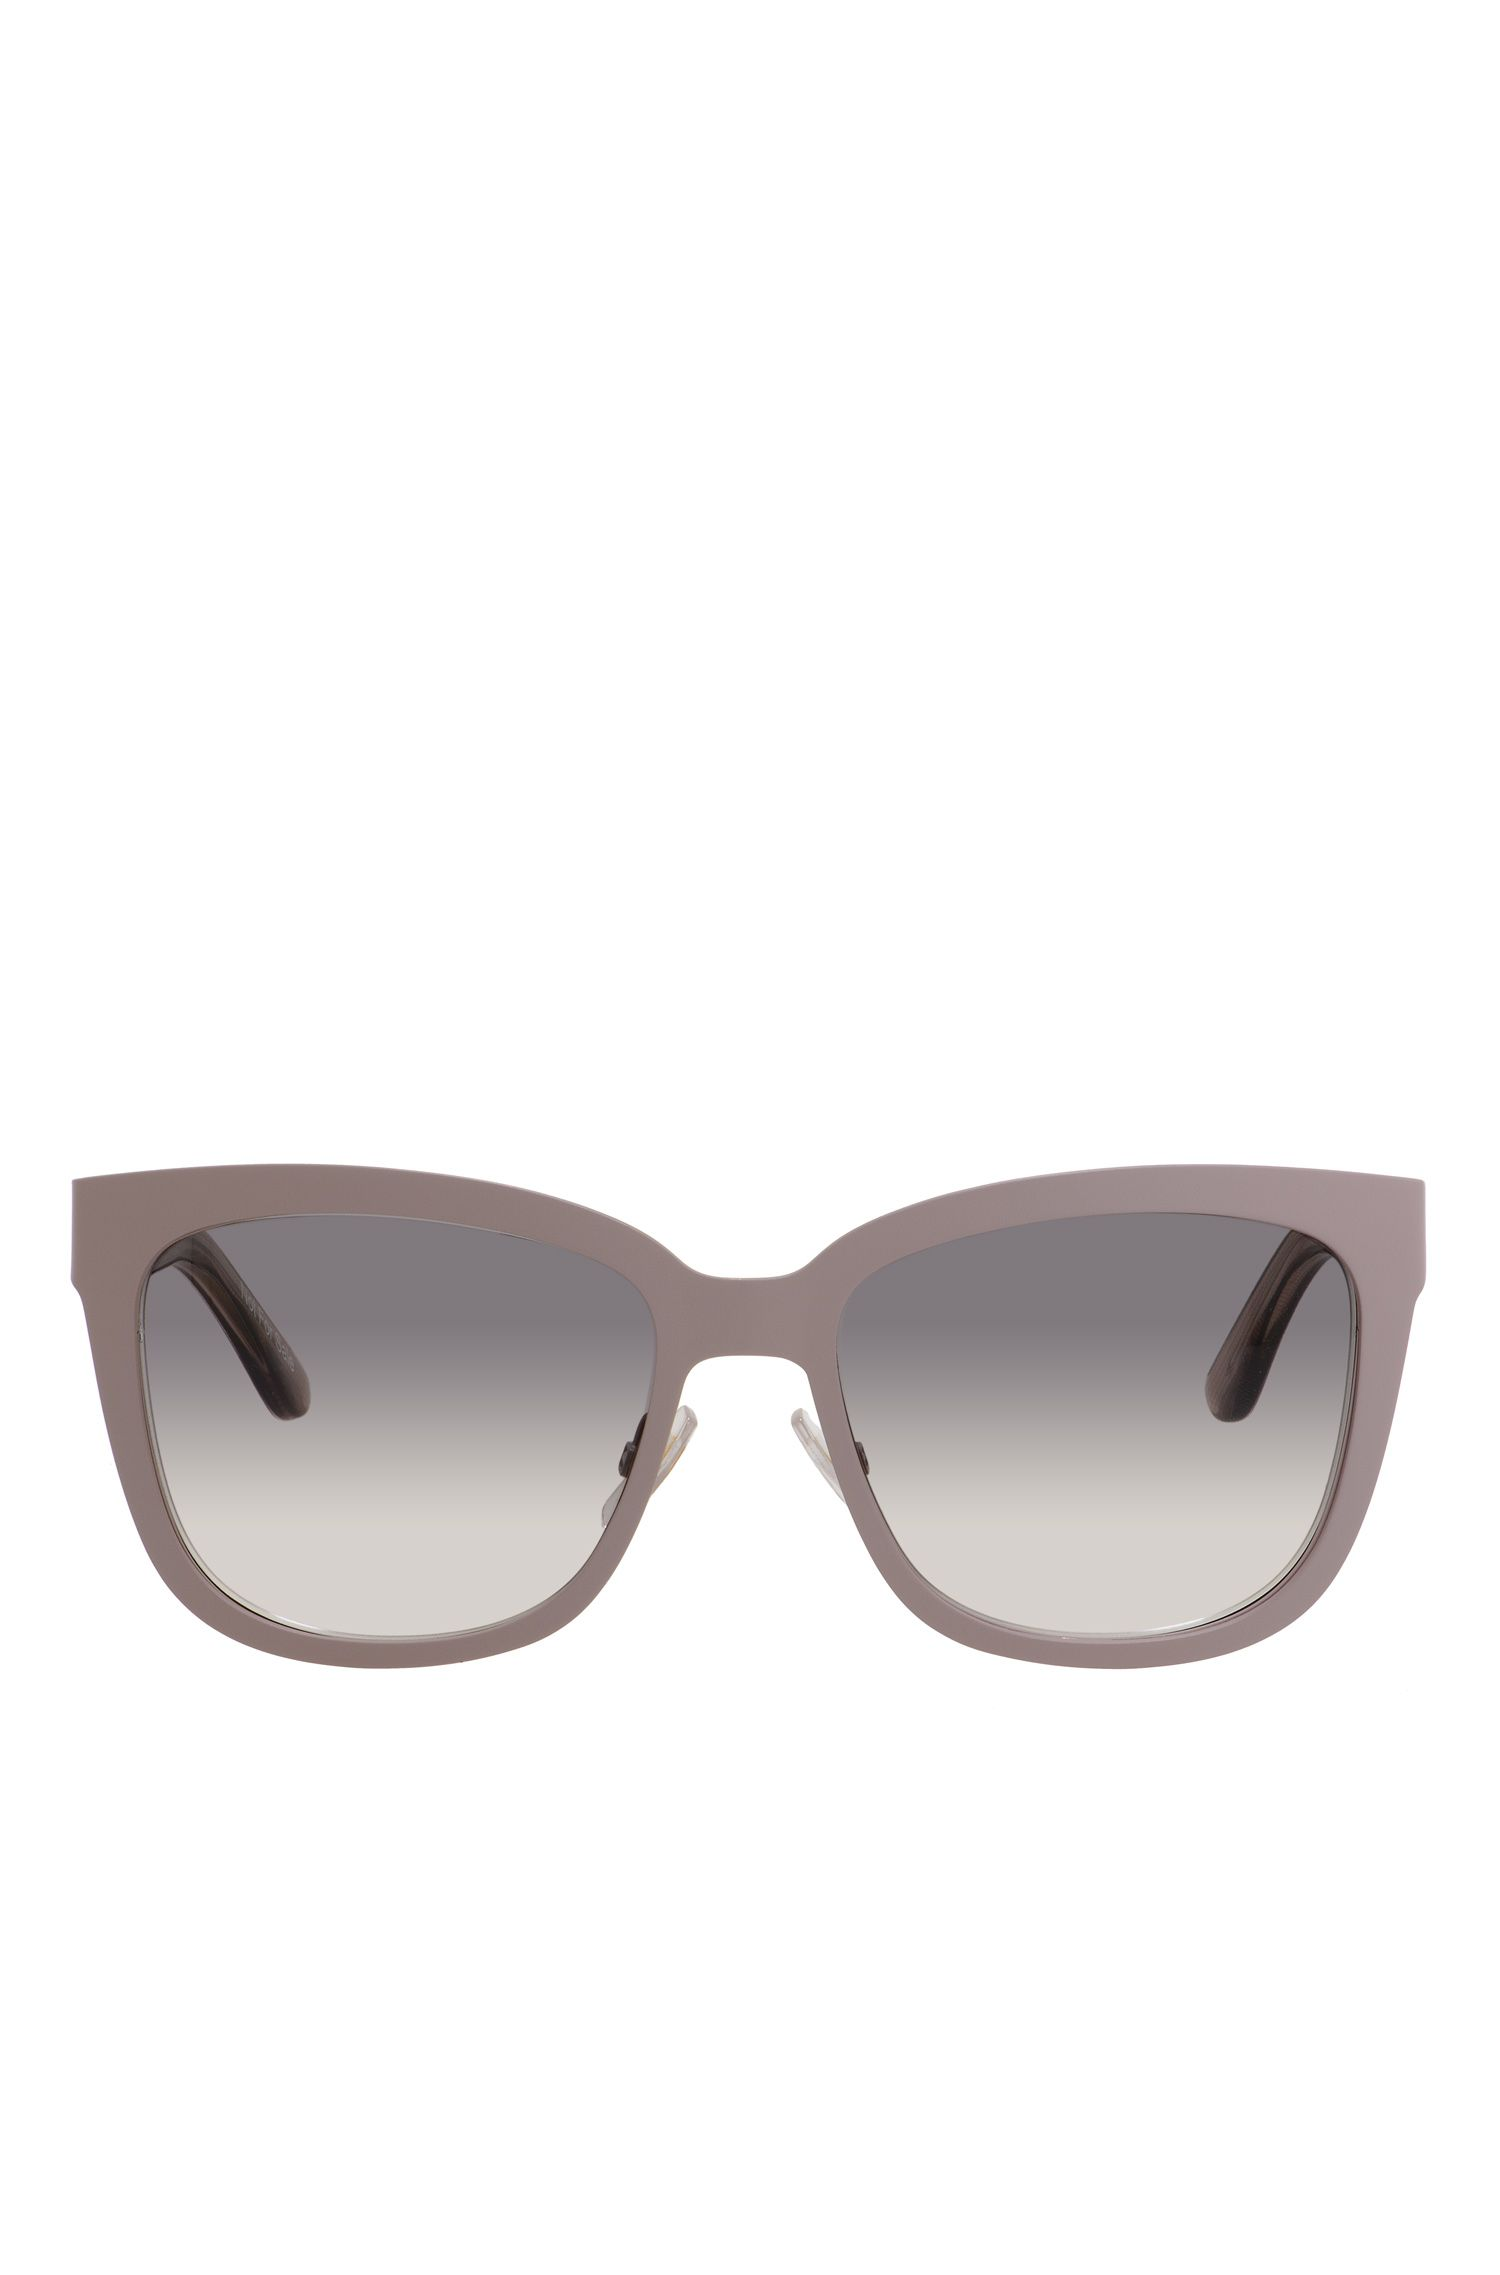 Gray Gradient Lens Rectangular Sunglasses | BOSS 676S, Assorted-Pre-Pack